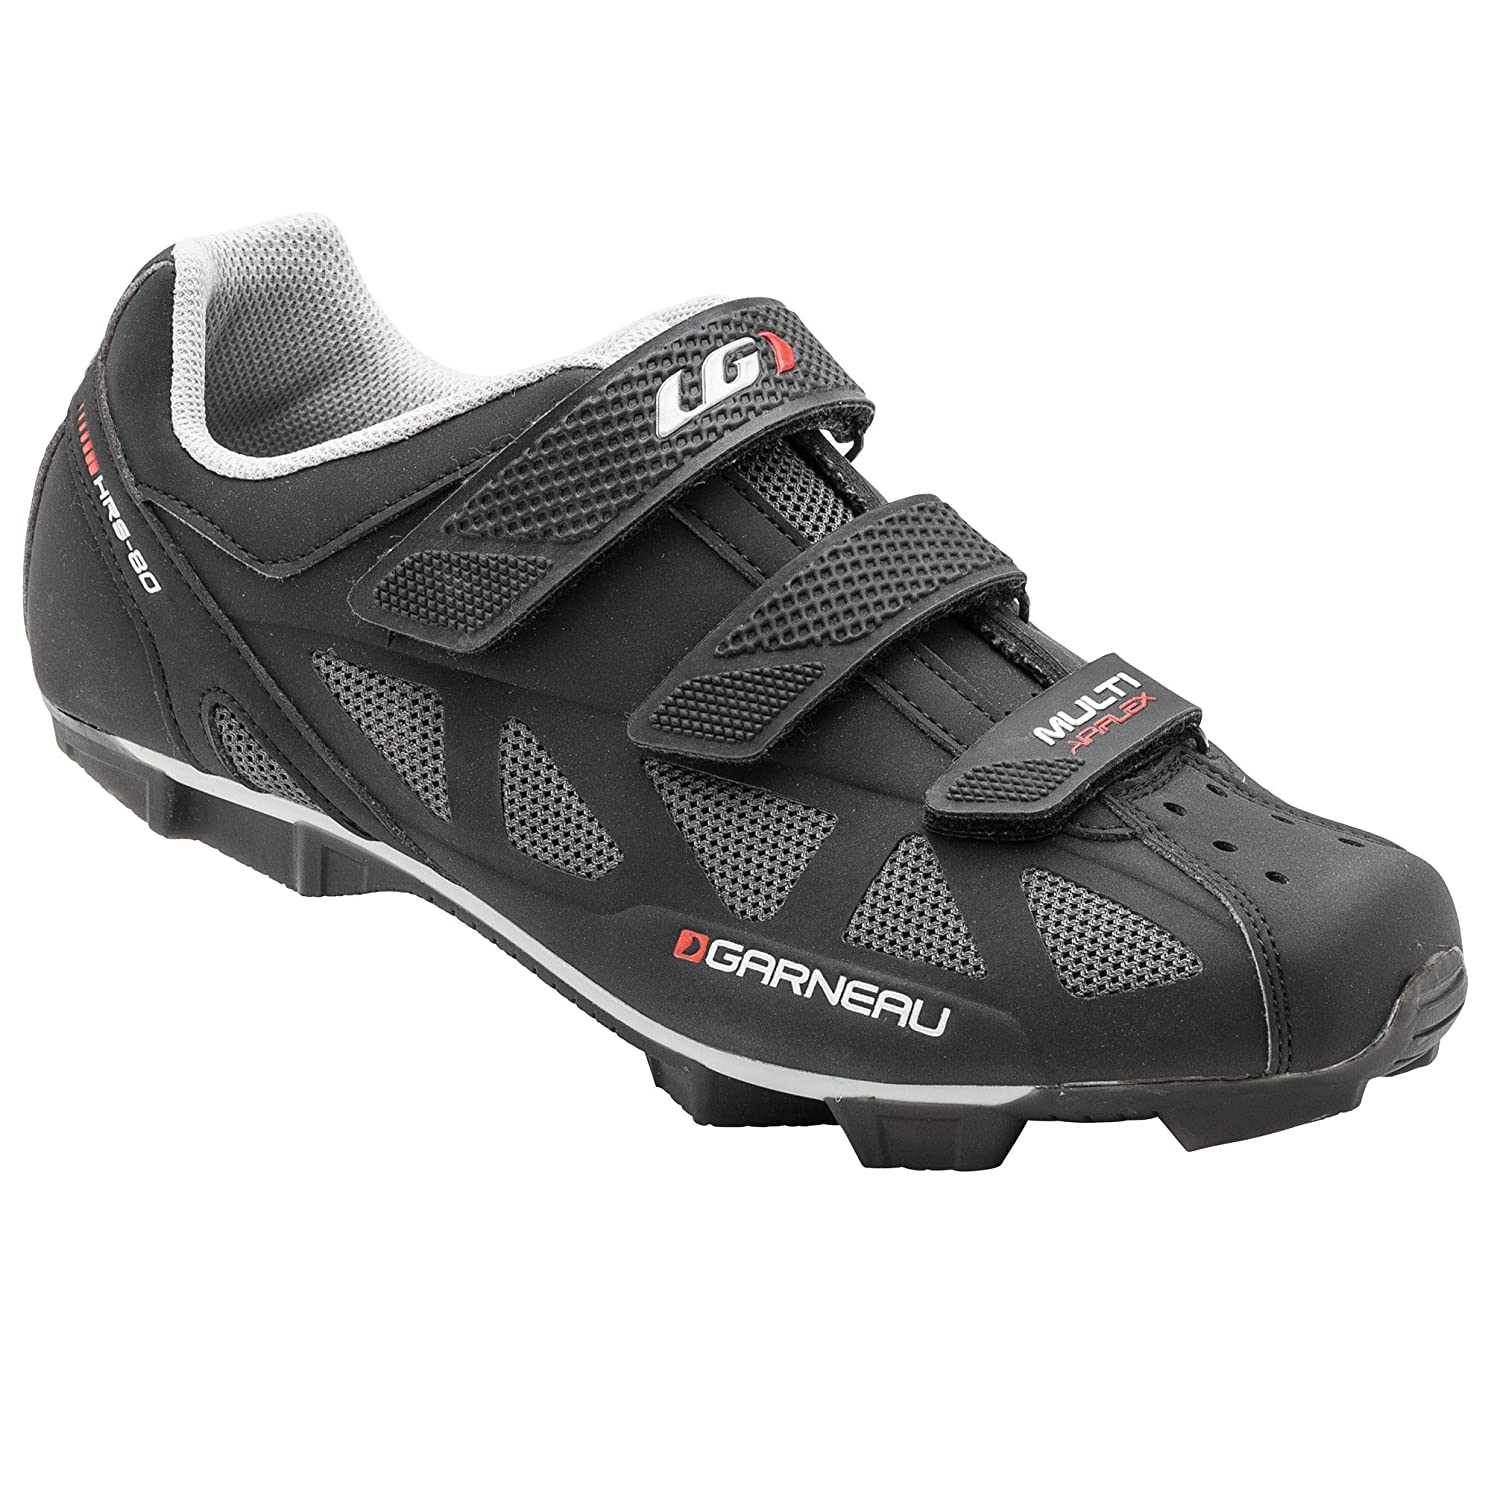 Louis Garneau - Men's Multi Air Flex Bike Shoes for Commuting, MTB and Indoor Cycling, SPD Cleats Compatible with MTB Pedals